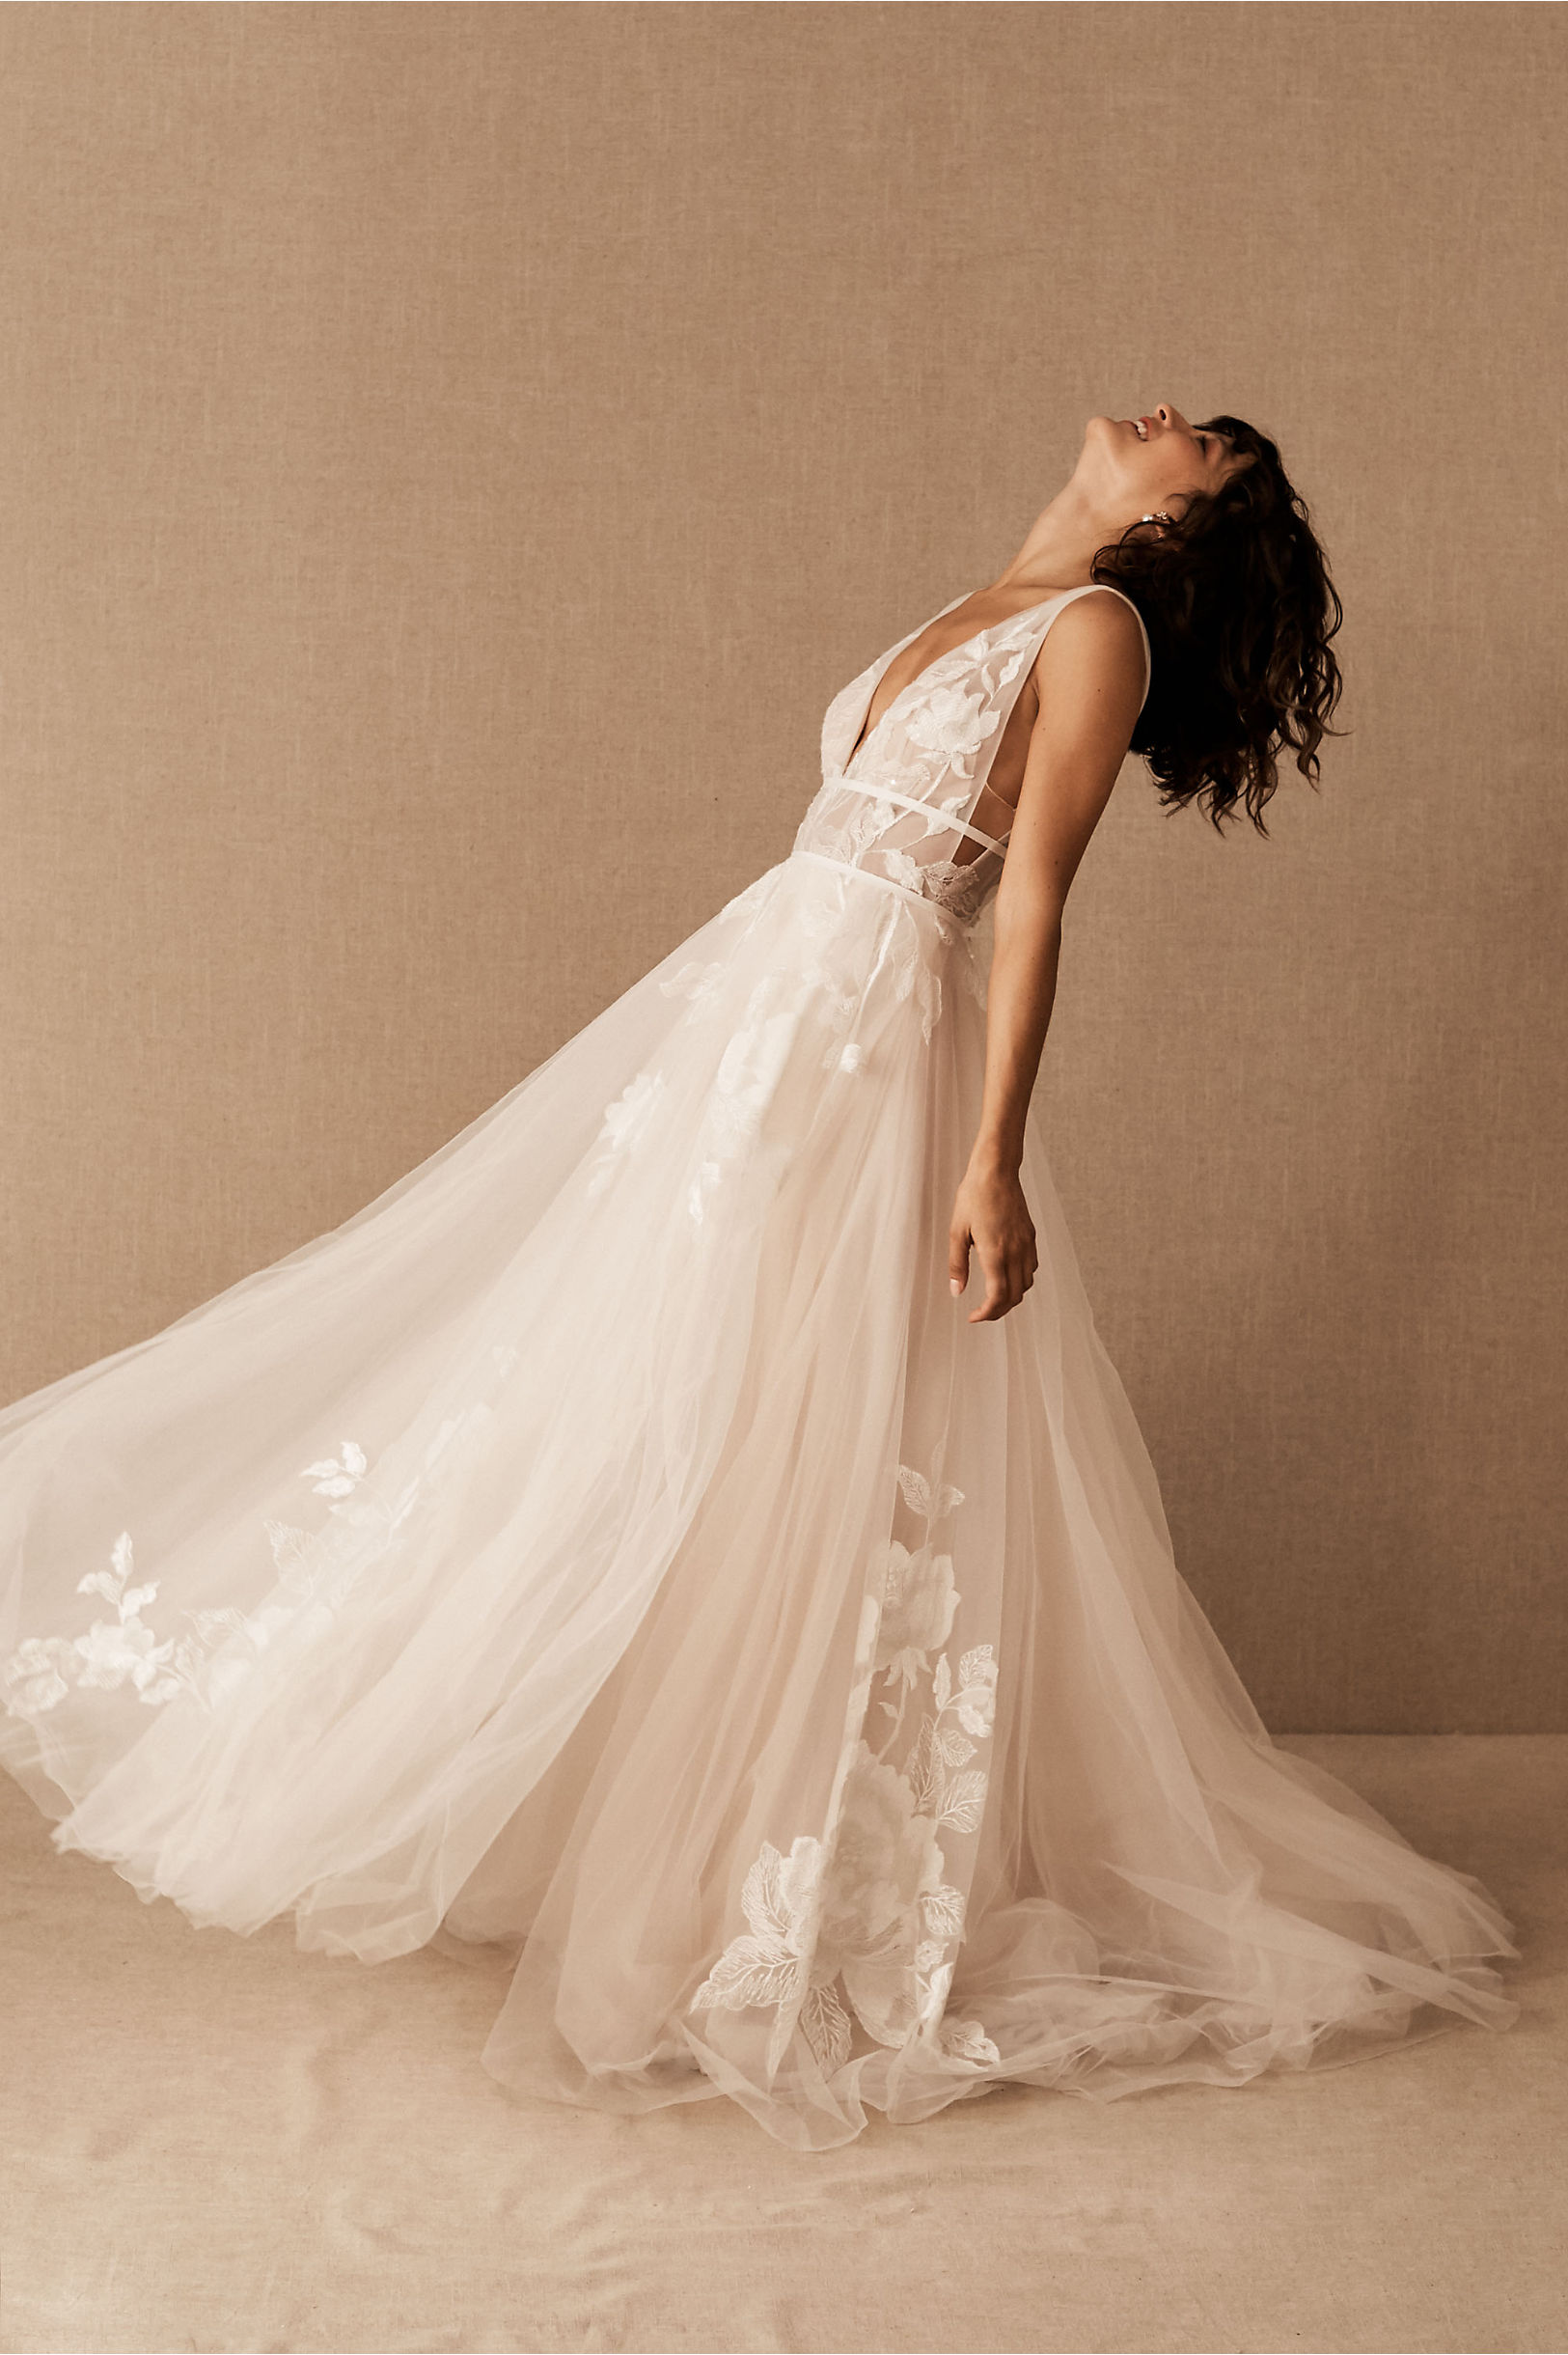 Dorable Sian Gown Bhldn Composition - Best Evening Gown Inspiration ...